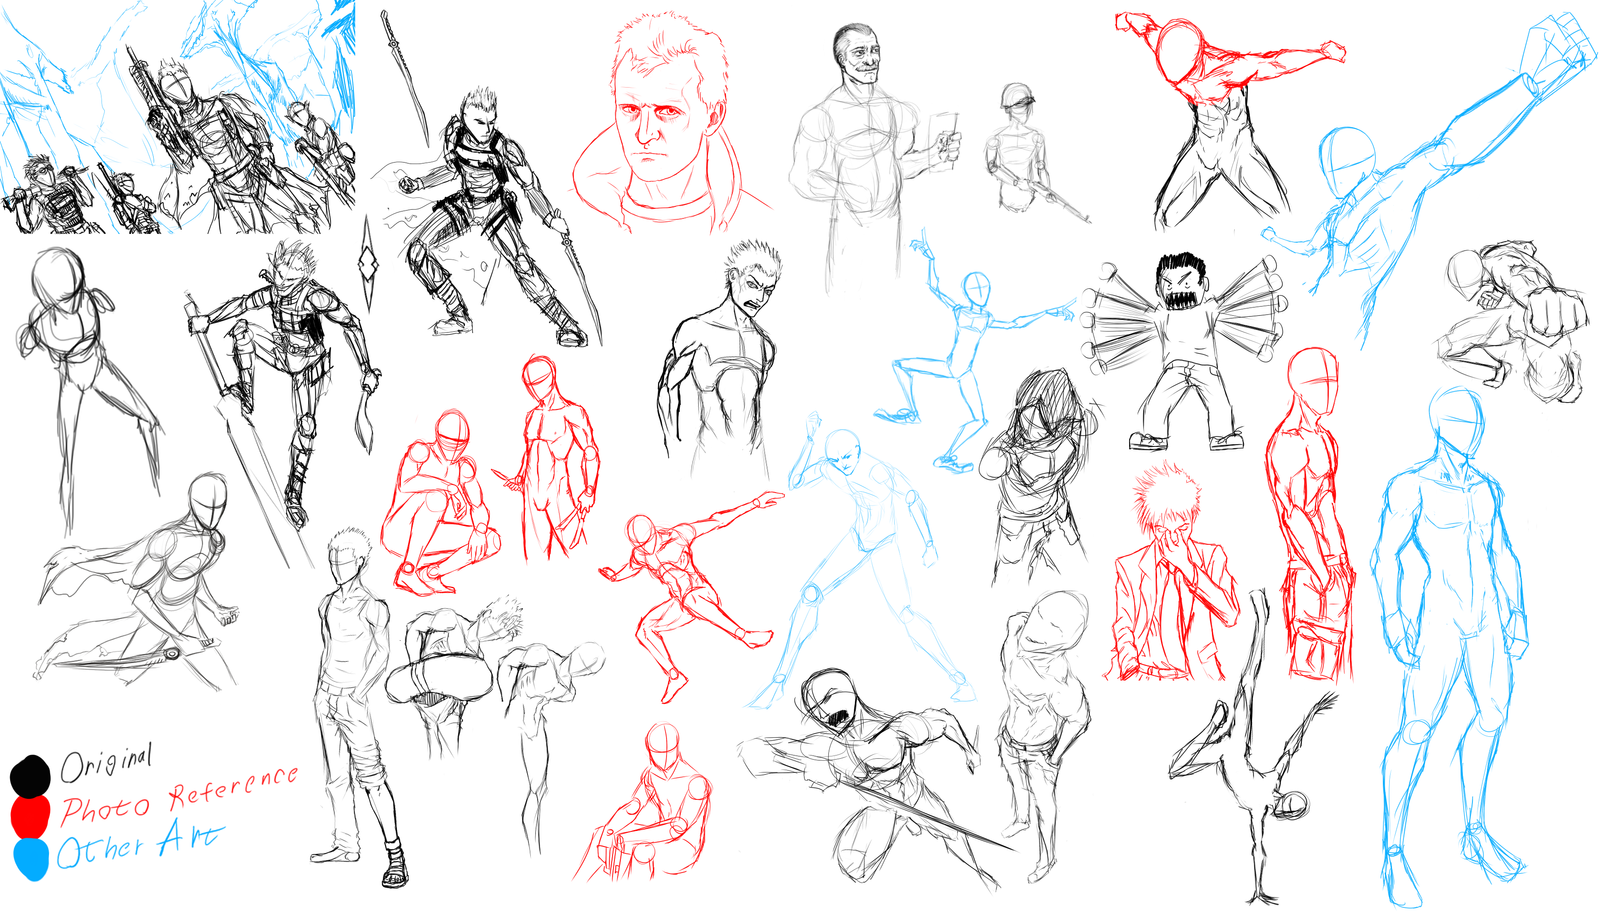 Man Body Drawing Reference Poses Best Cars 2018